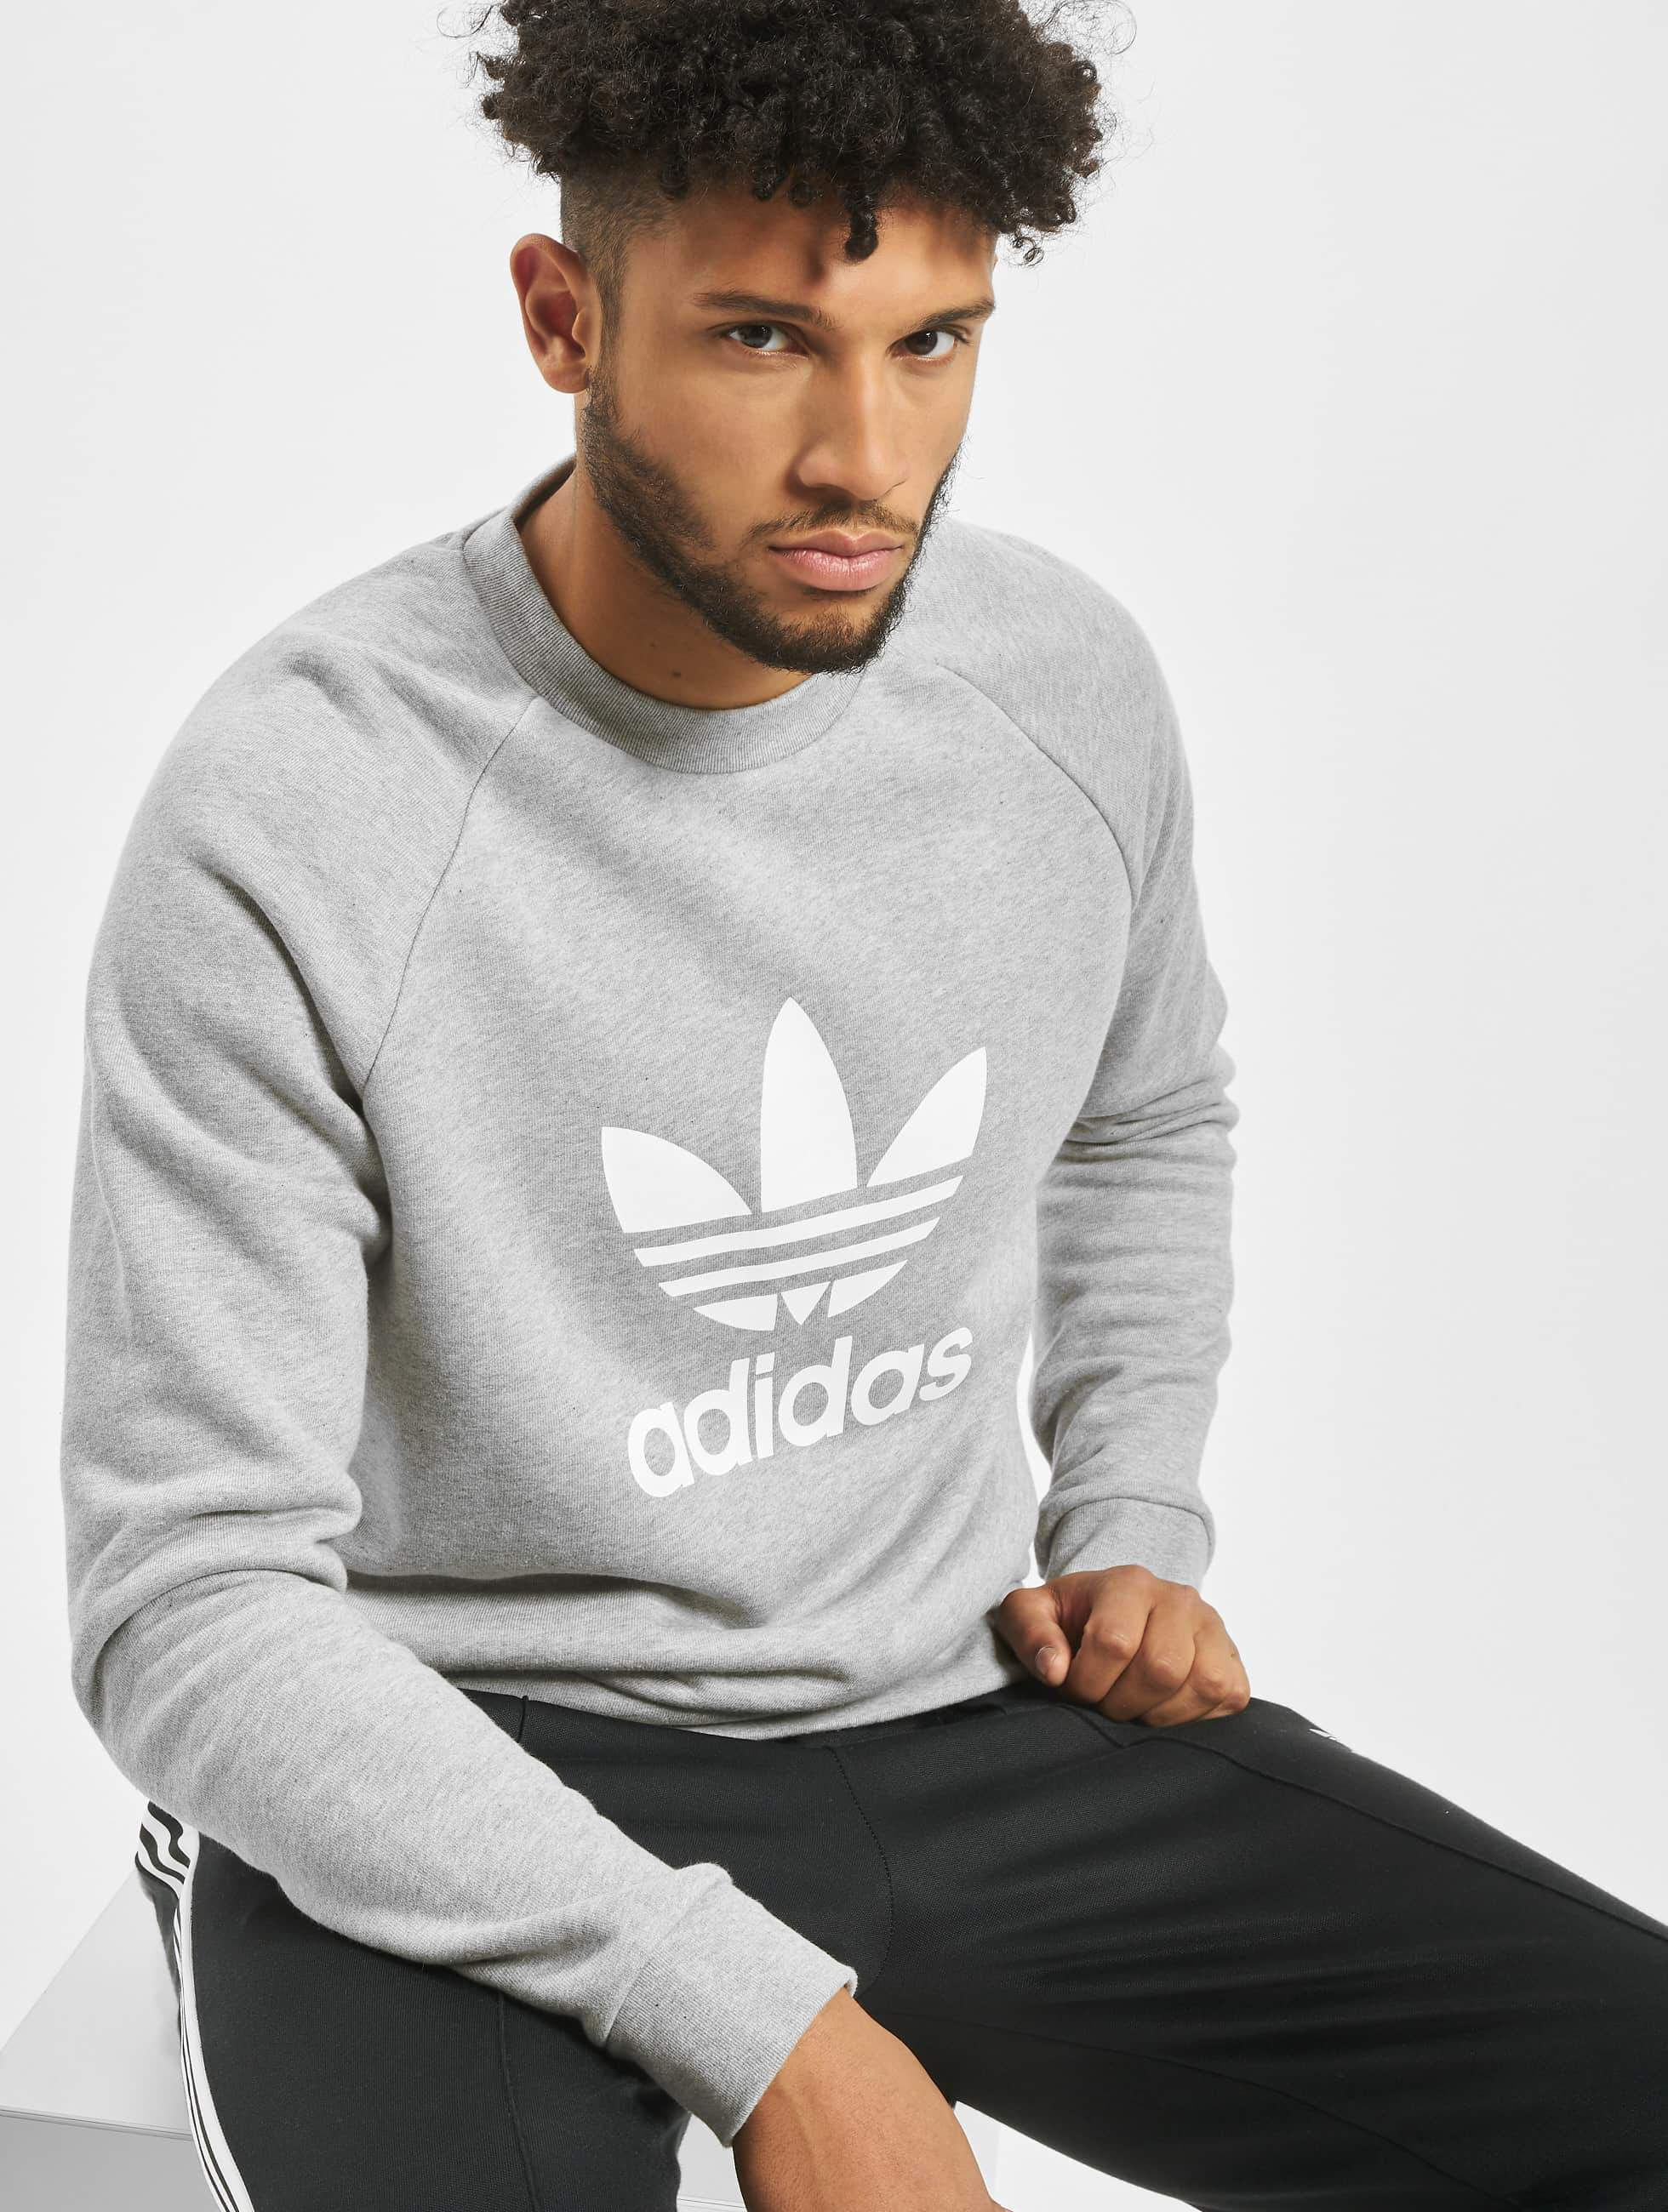 Adidas Trefoil Sweatshirt Medium Grey Heather